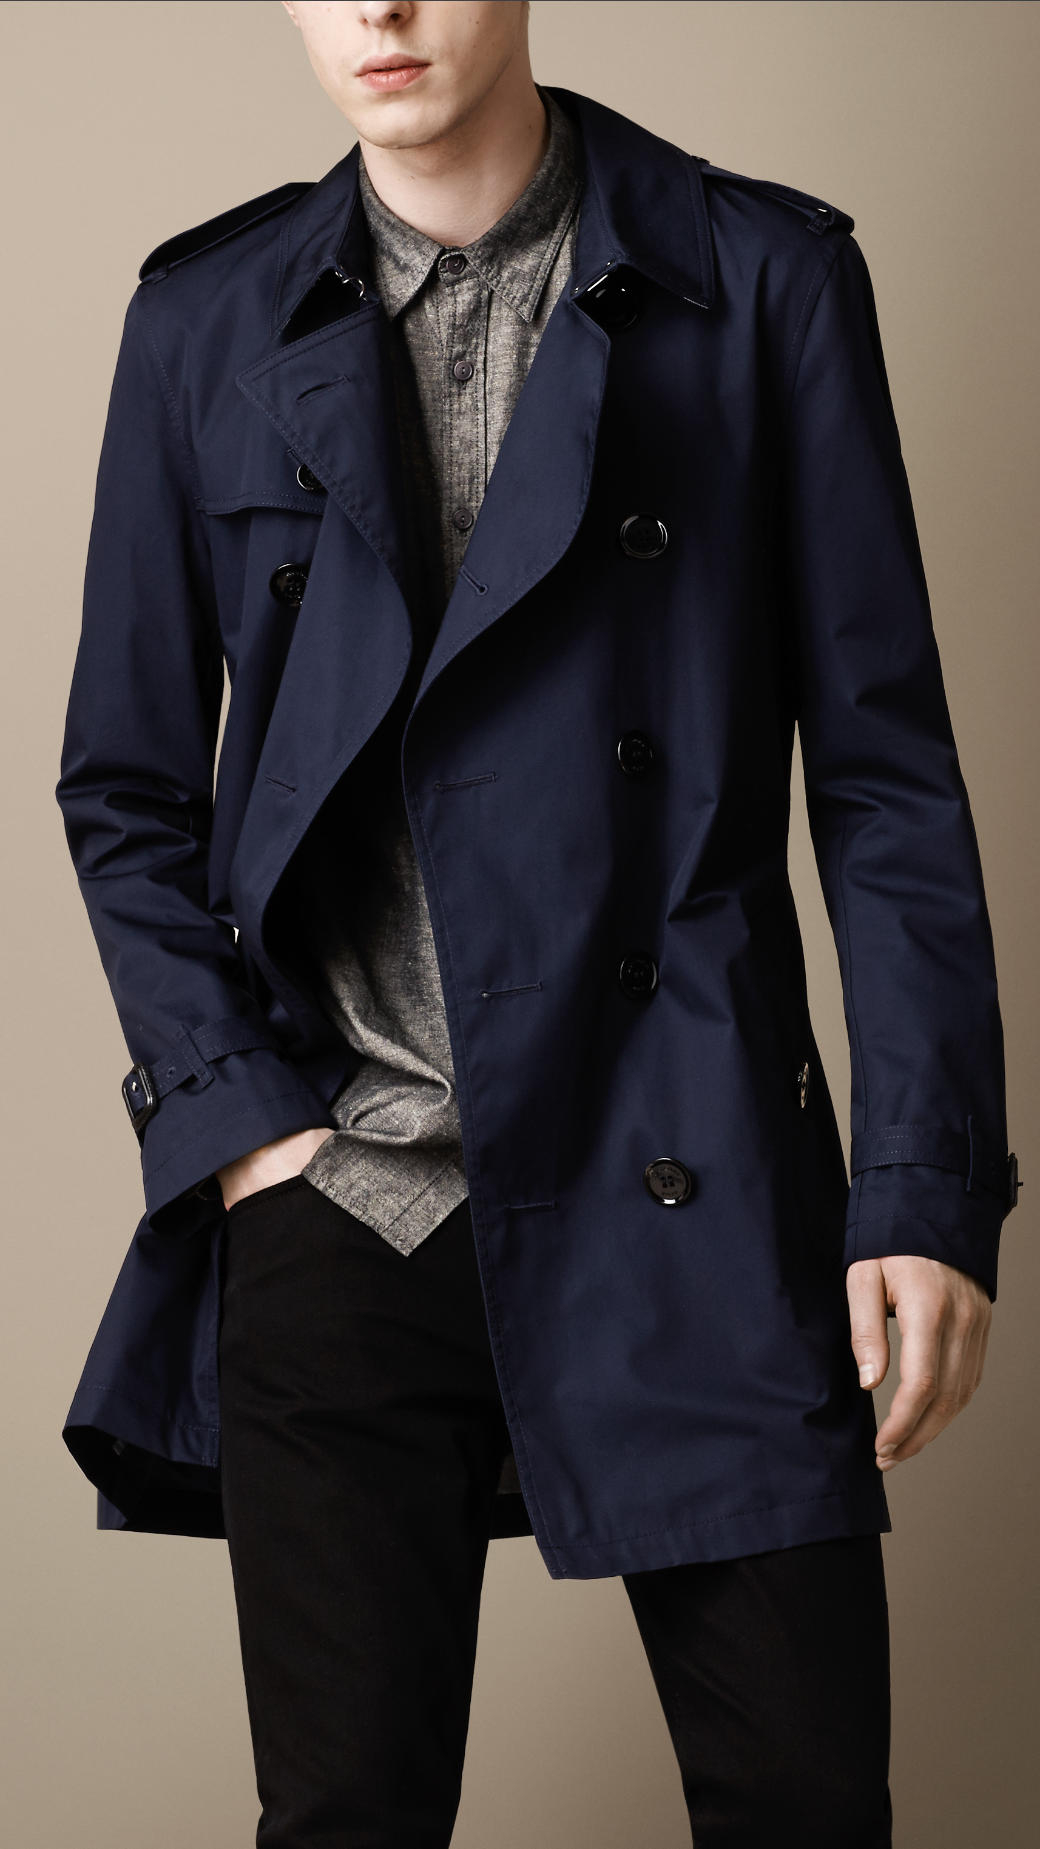 Buy Raincoats & macs from the Mens department at Debenhams. You'll find the widest range of Raincoats & macs products online and delivered to your door. Shop today!